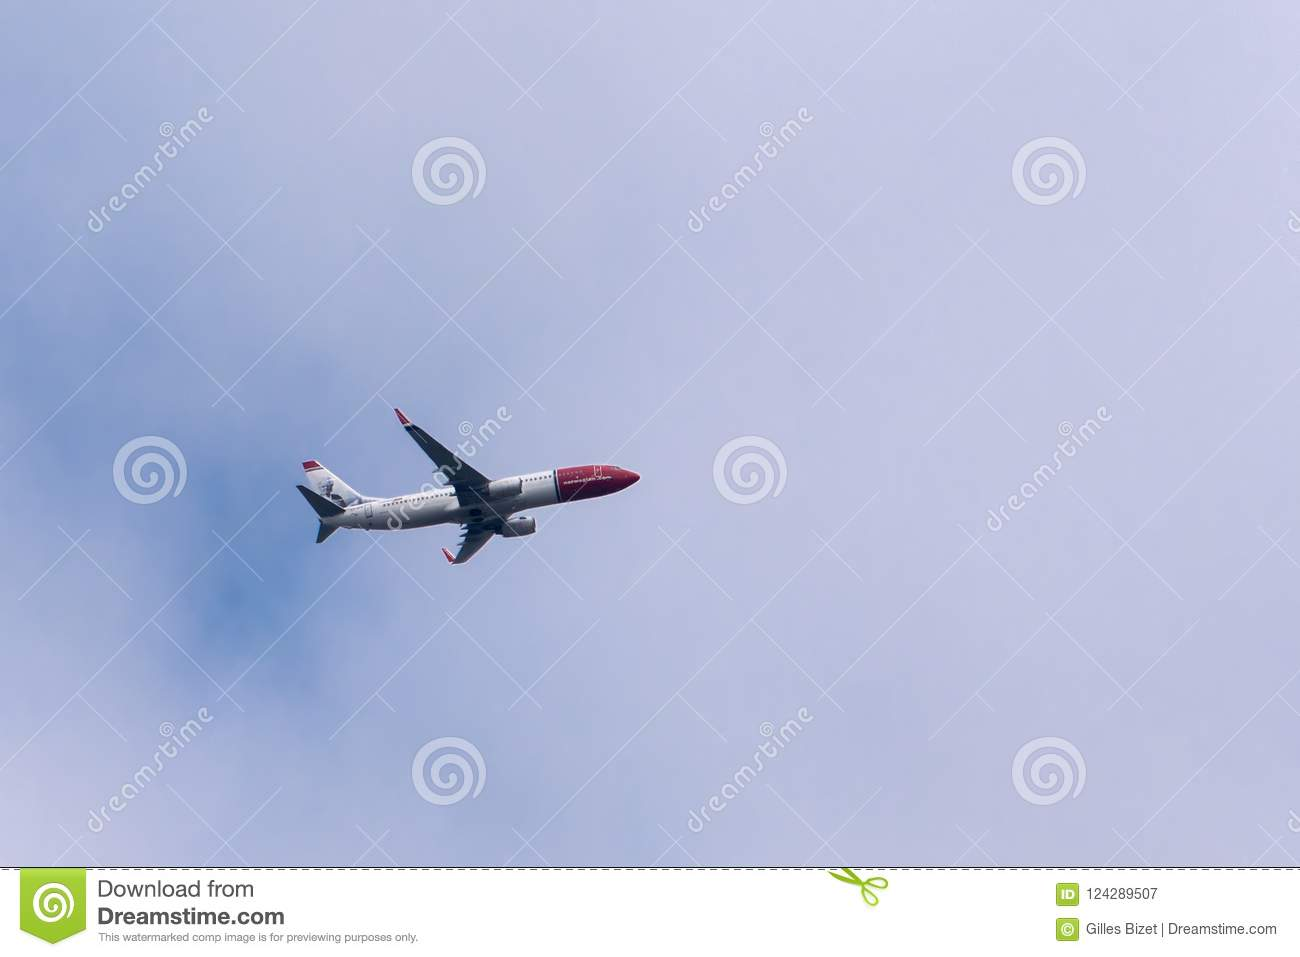 boeing 737 8jp from